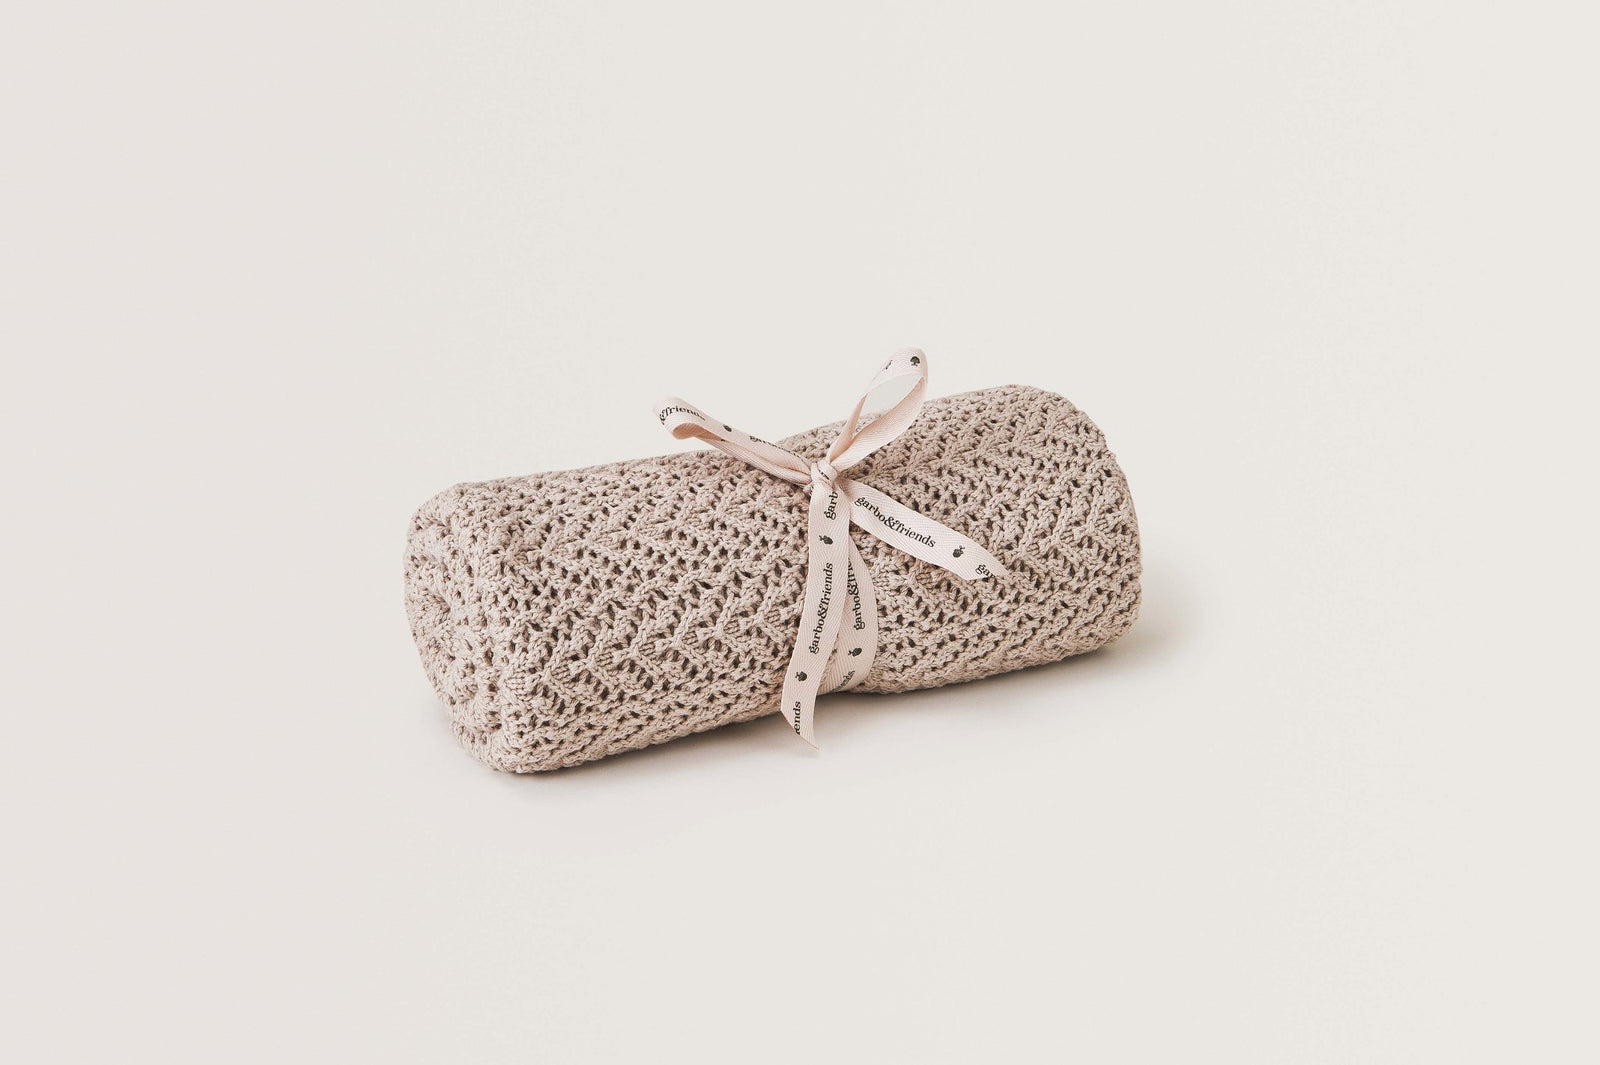 Breighe Crochet Cotton/Wool Blanket